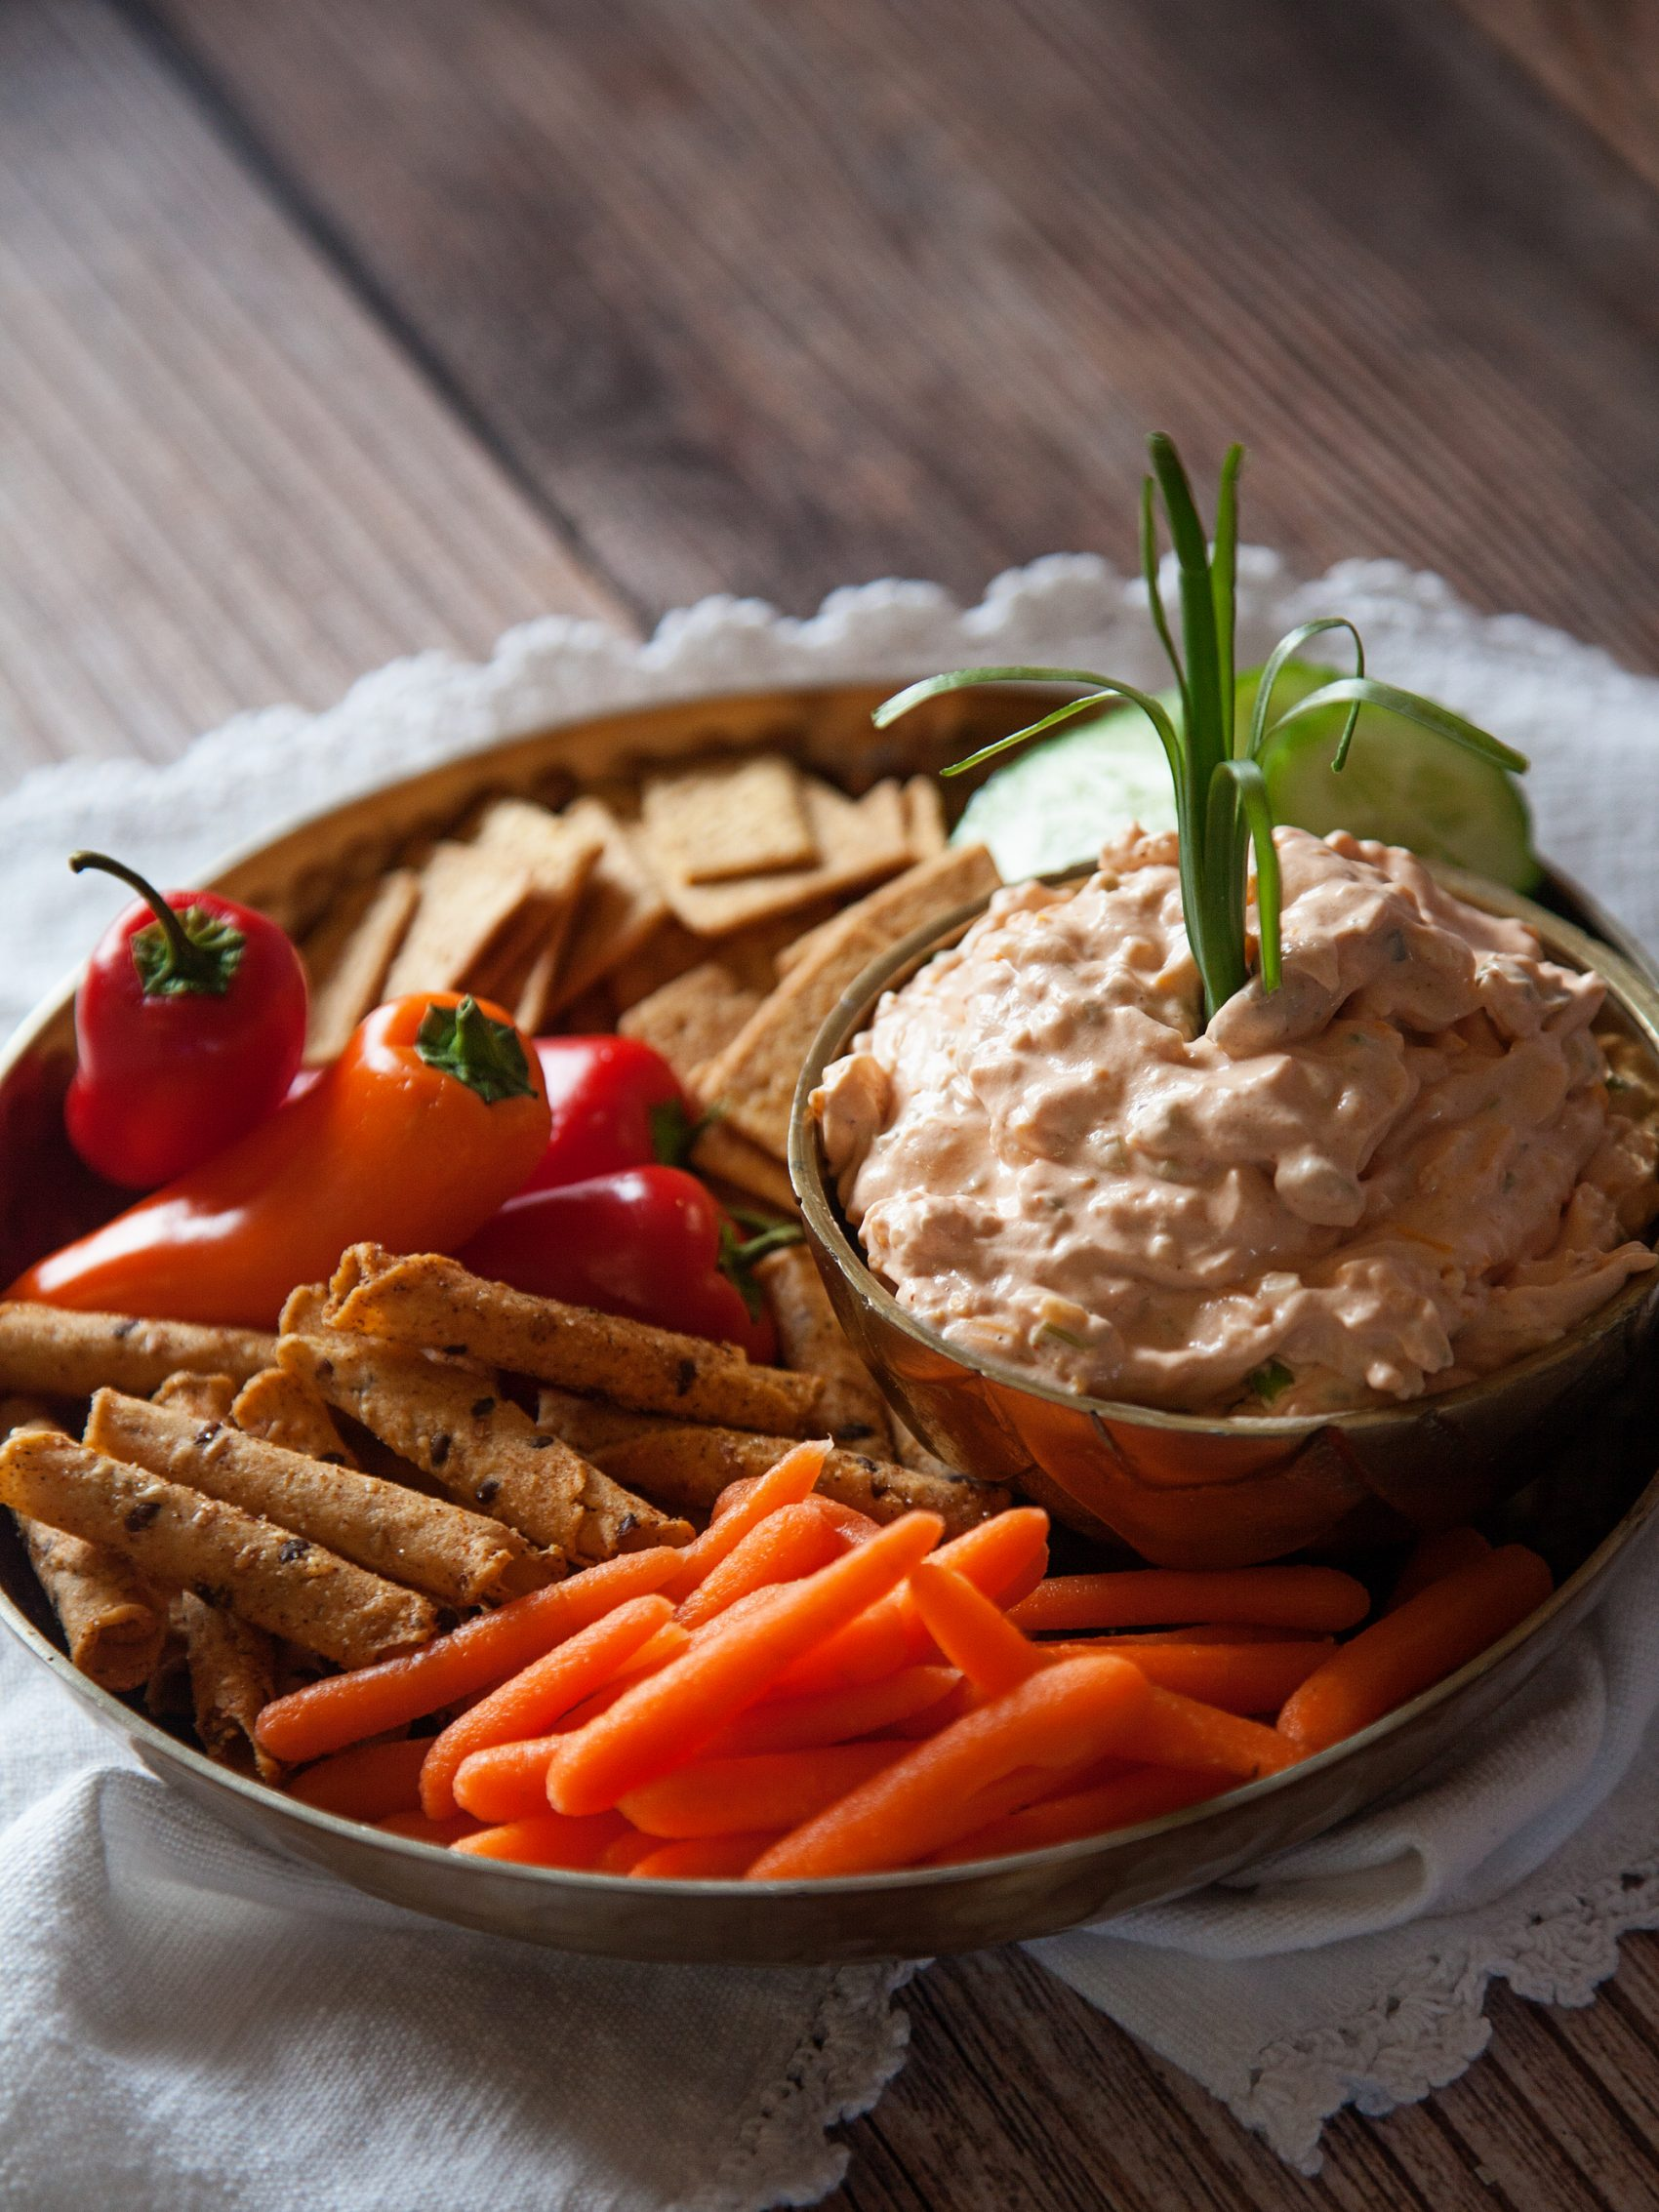 Win the battle of the dips with this scrumptious cheesy salsa dip from WhipperBerry!